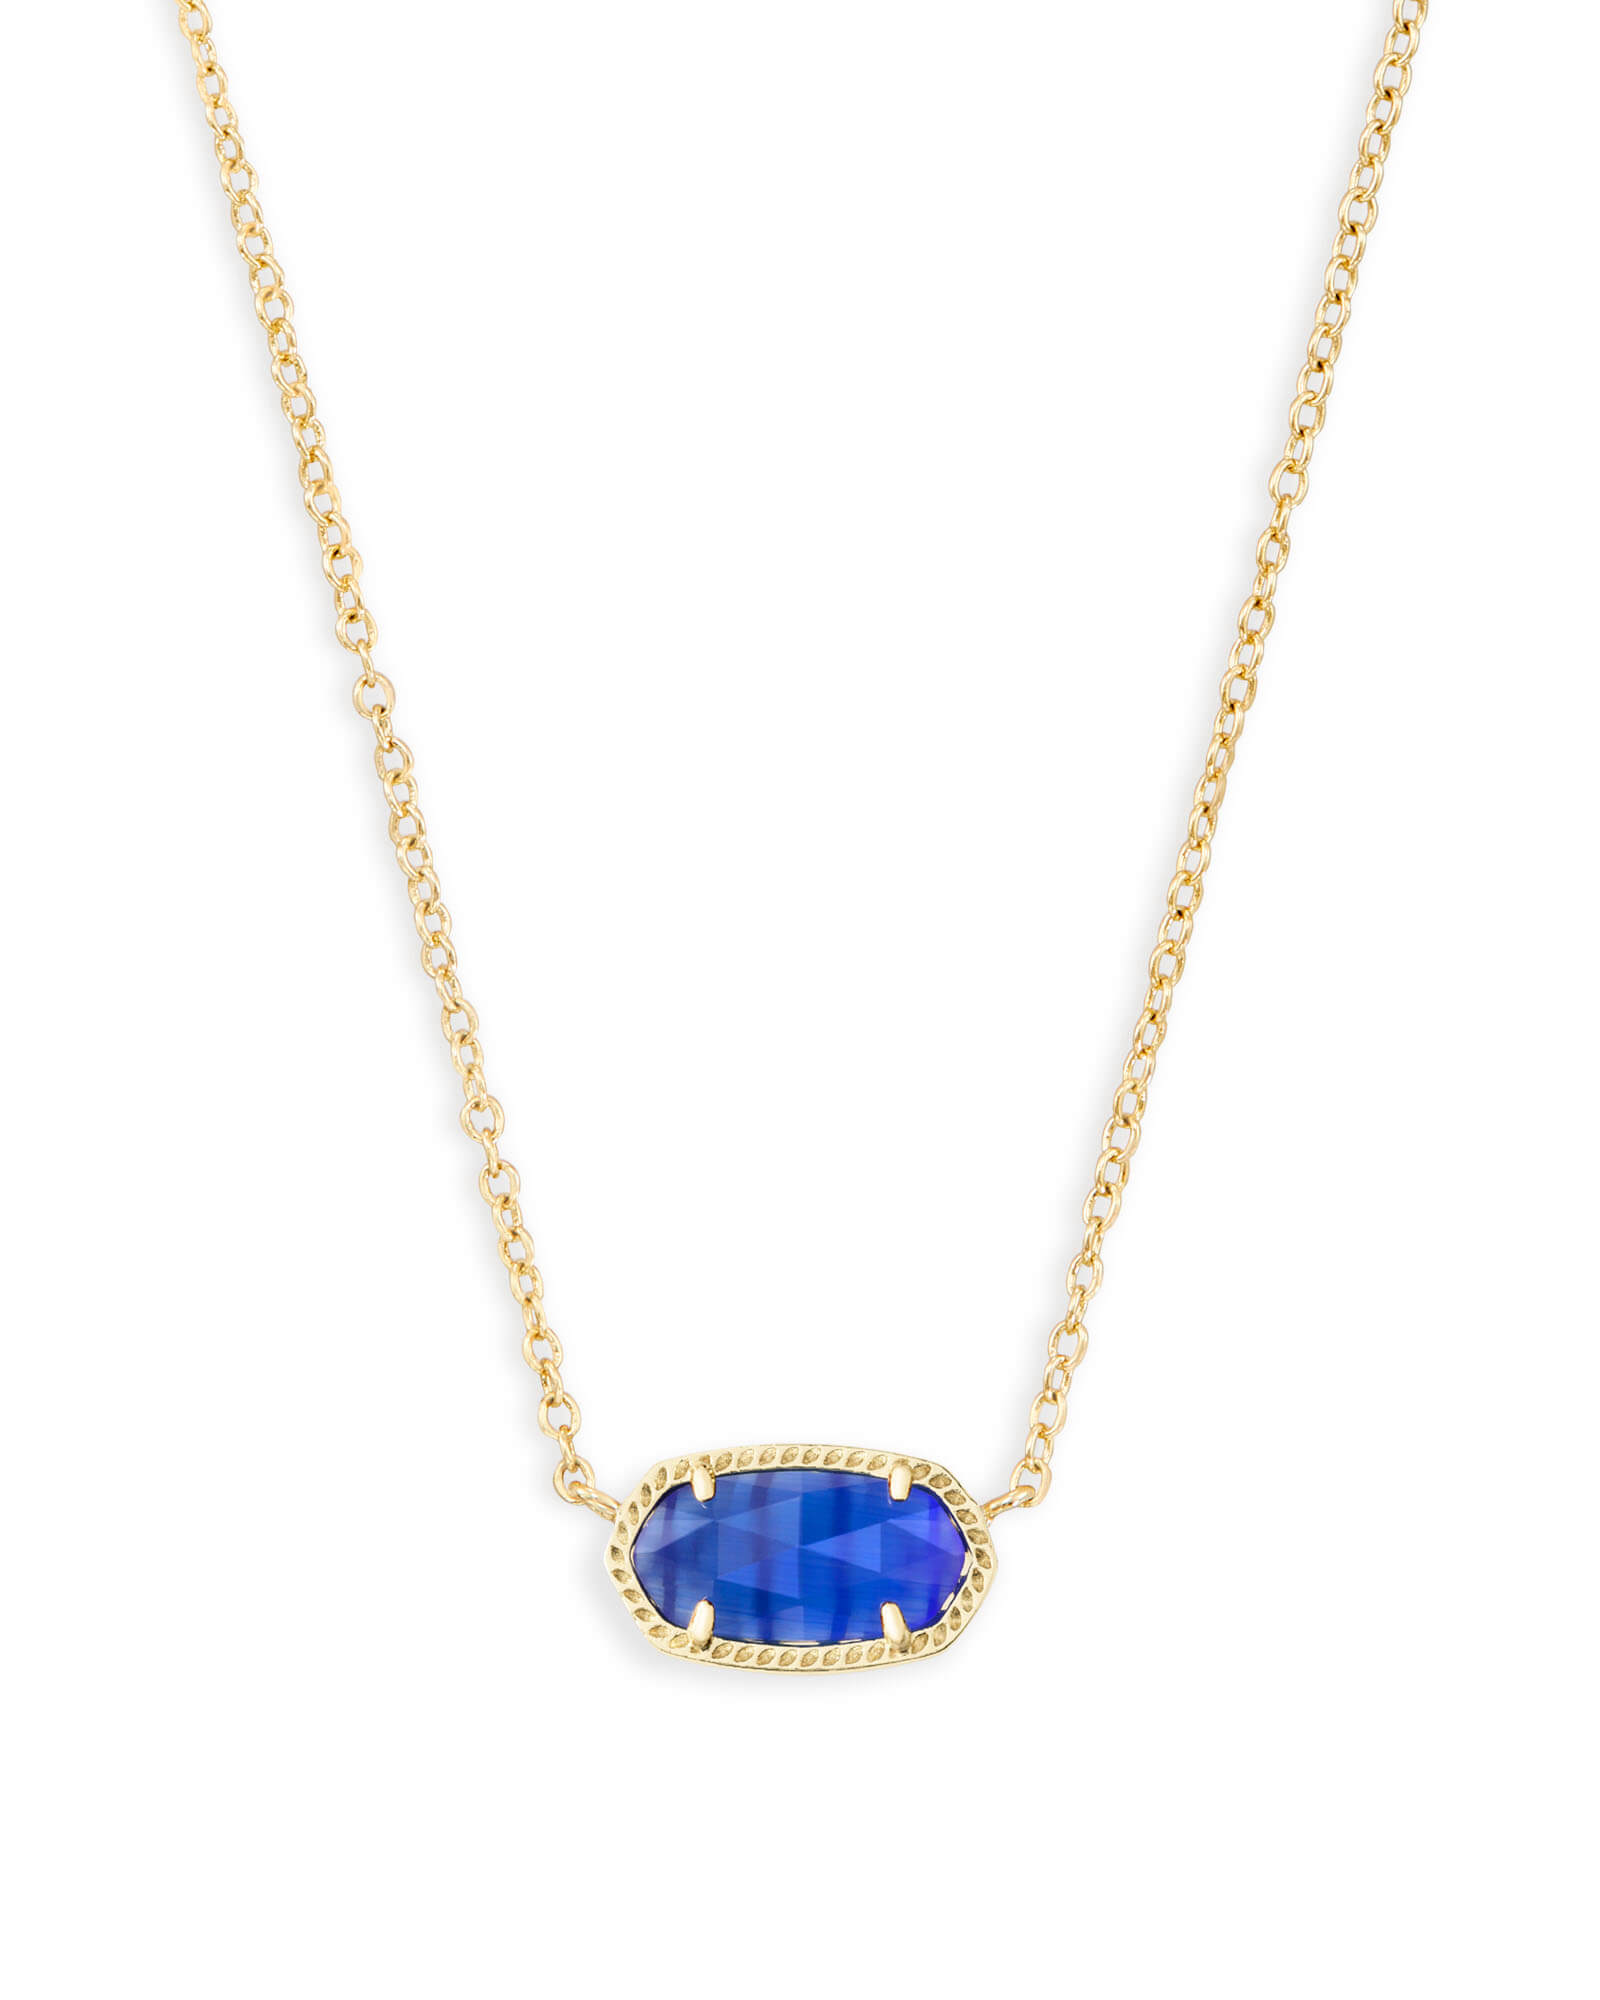 Pendant/Necklace by Kendra Scott